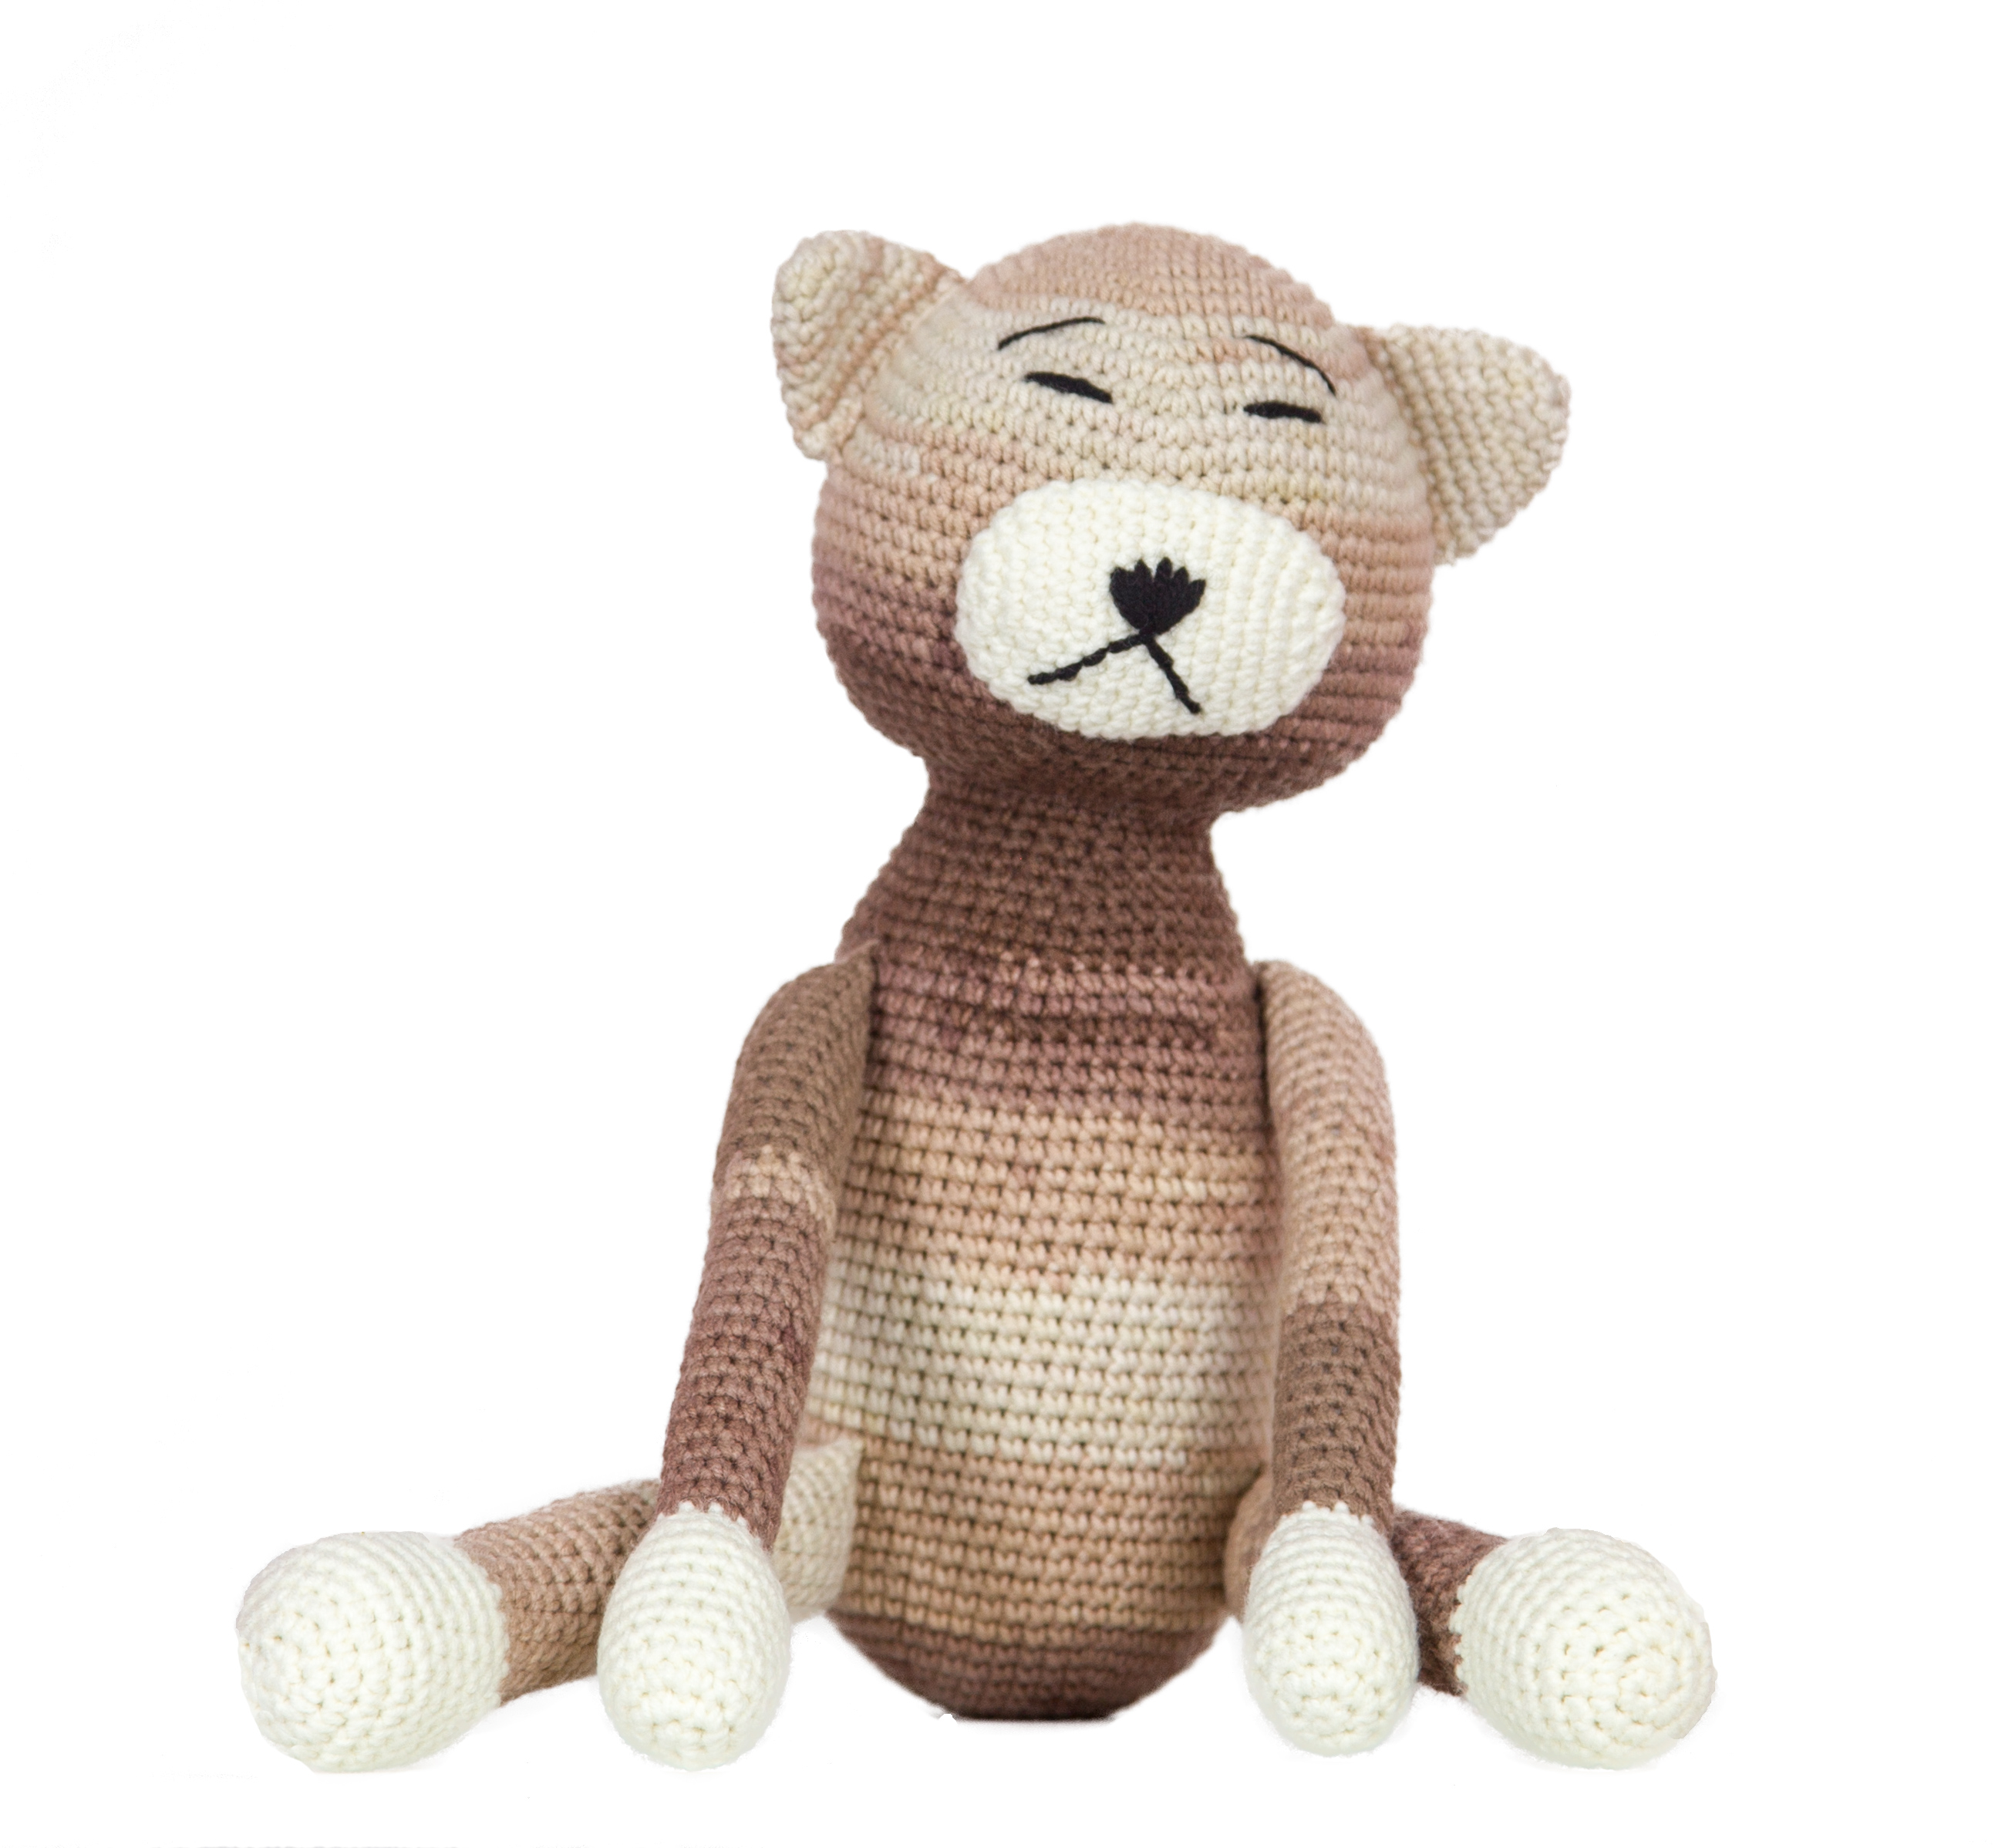 Crocheting toys for cats   2396x2587